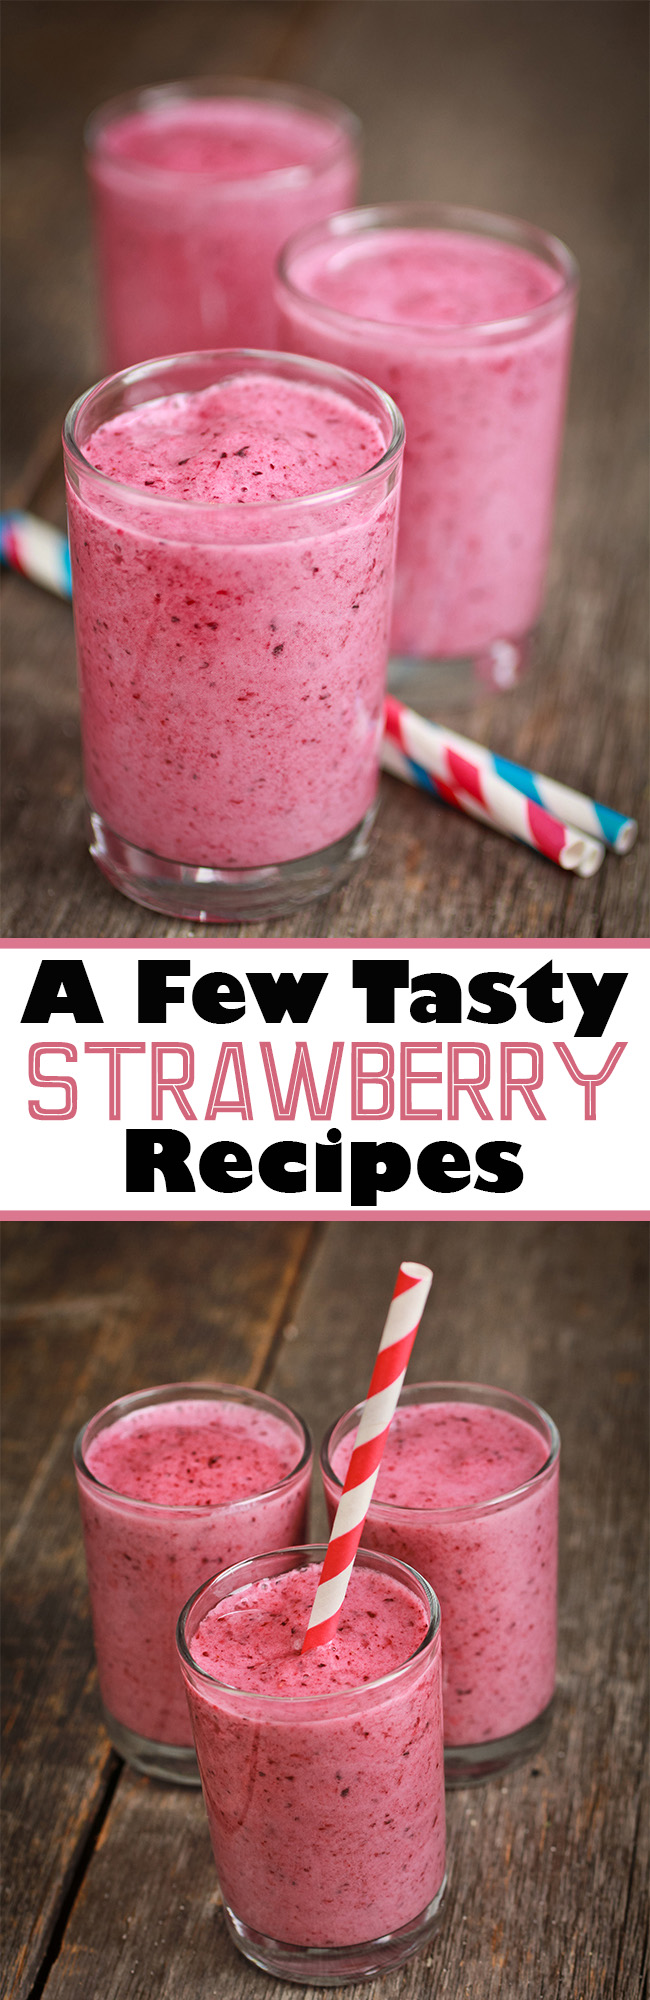 A Few Tasty #Strawberry Recipes